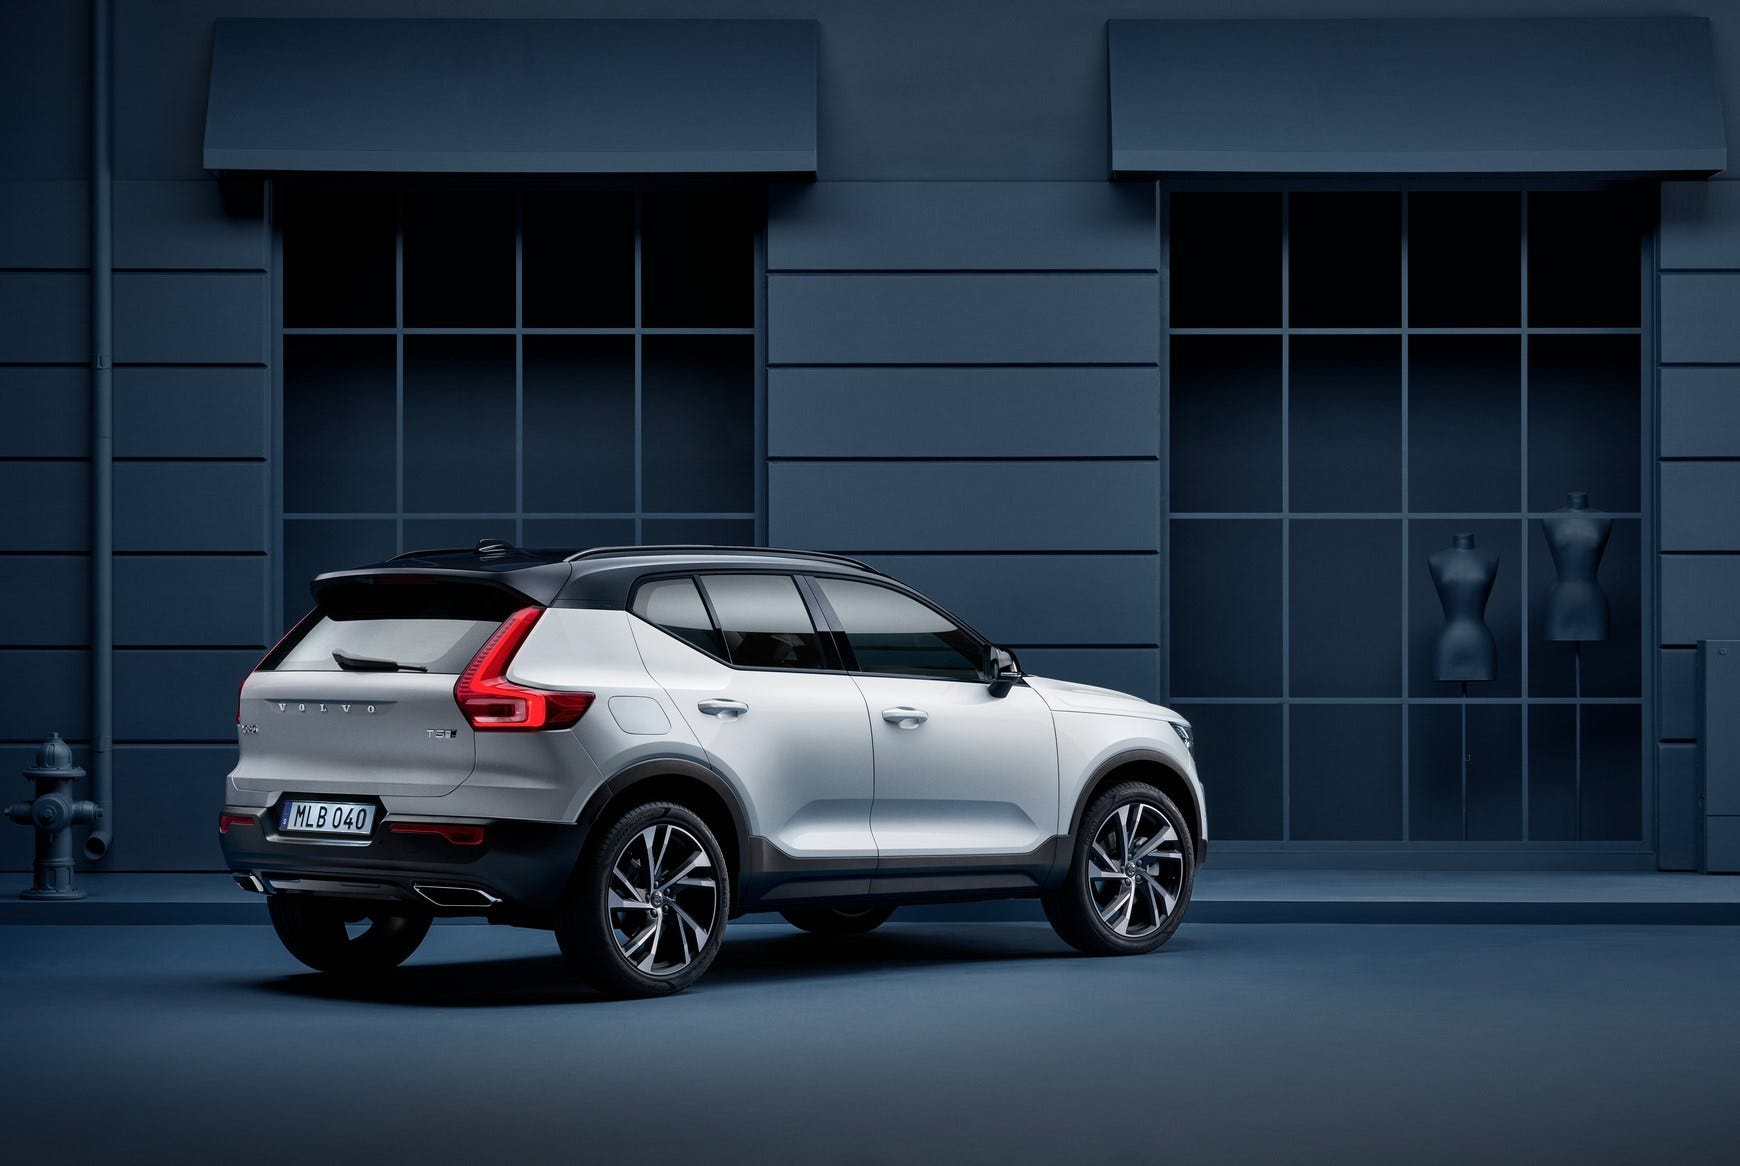 Volvo will offer a new subscription program starting with its XC40